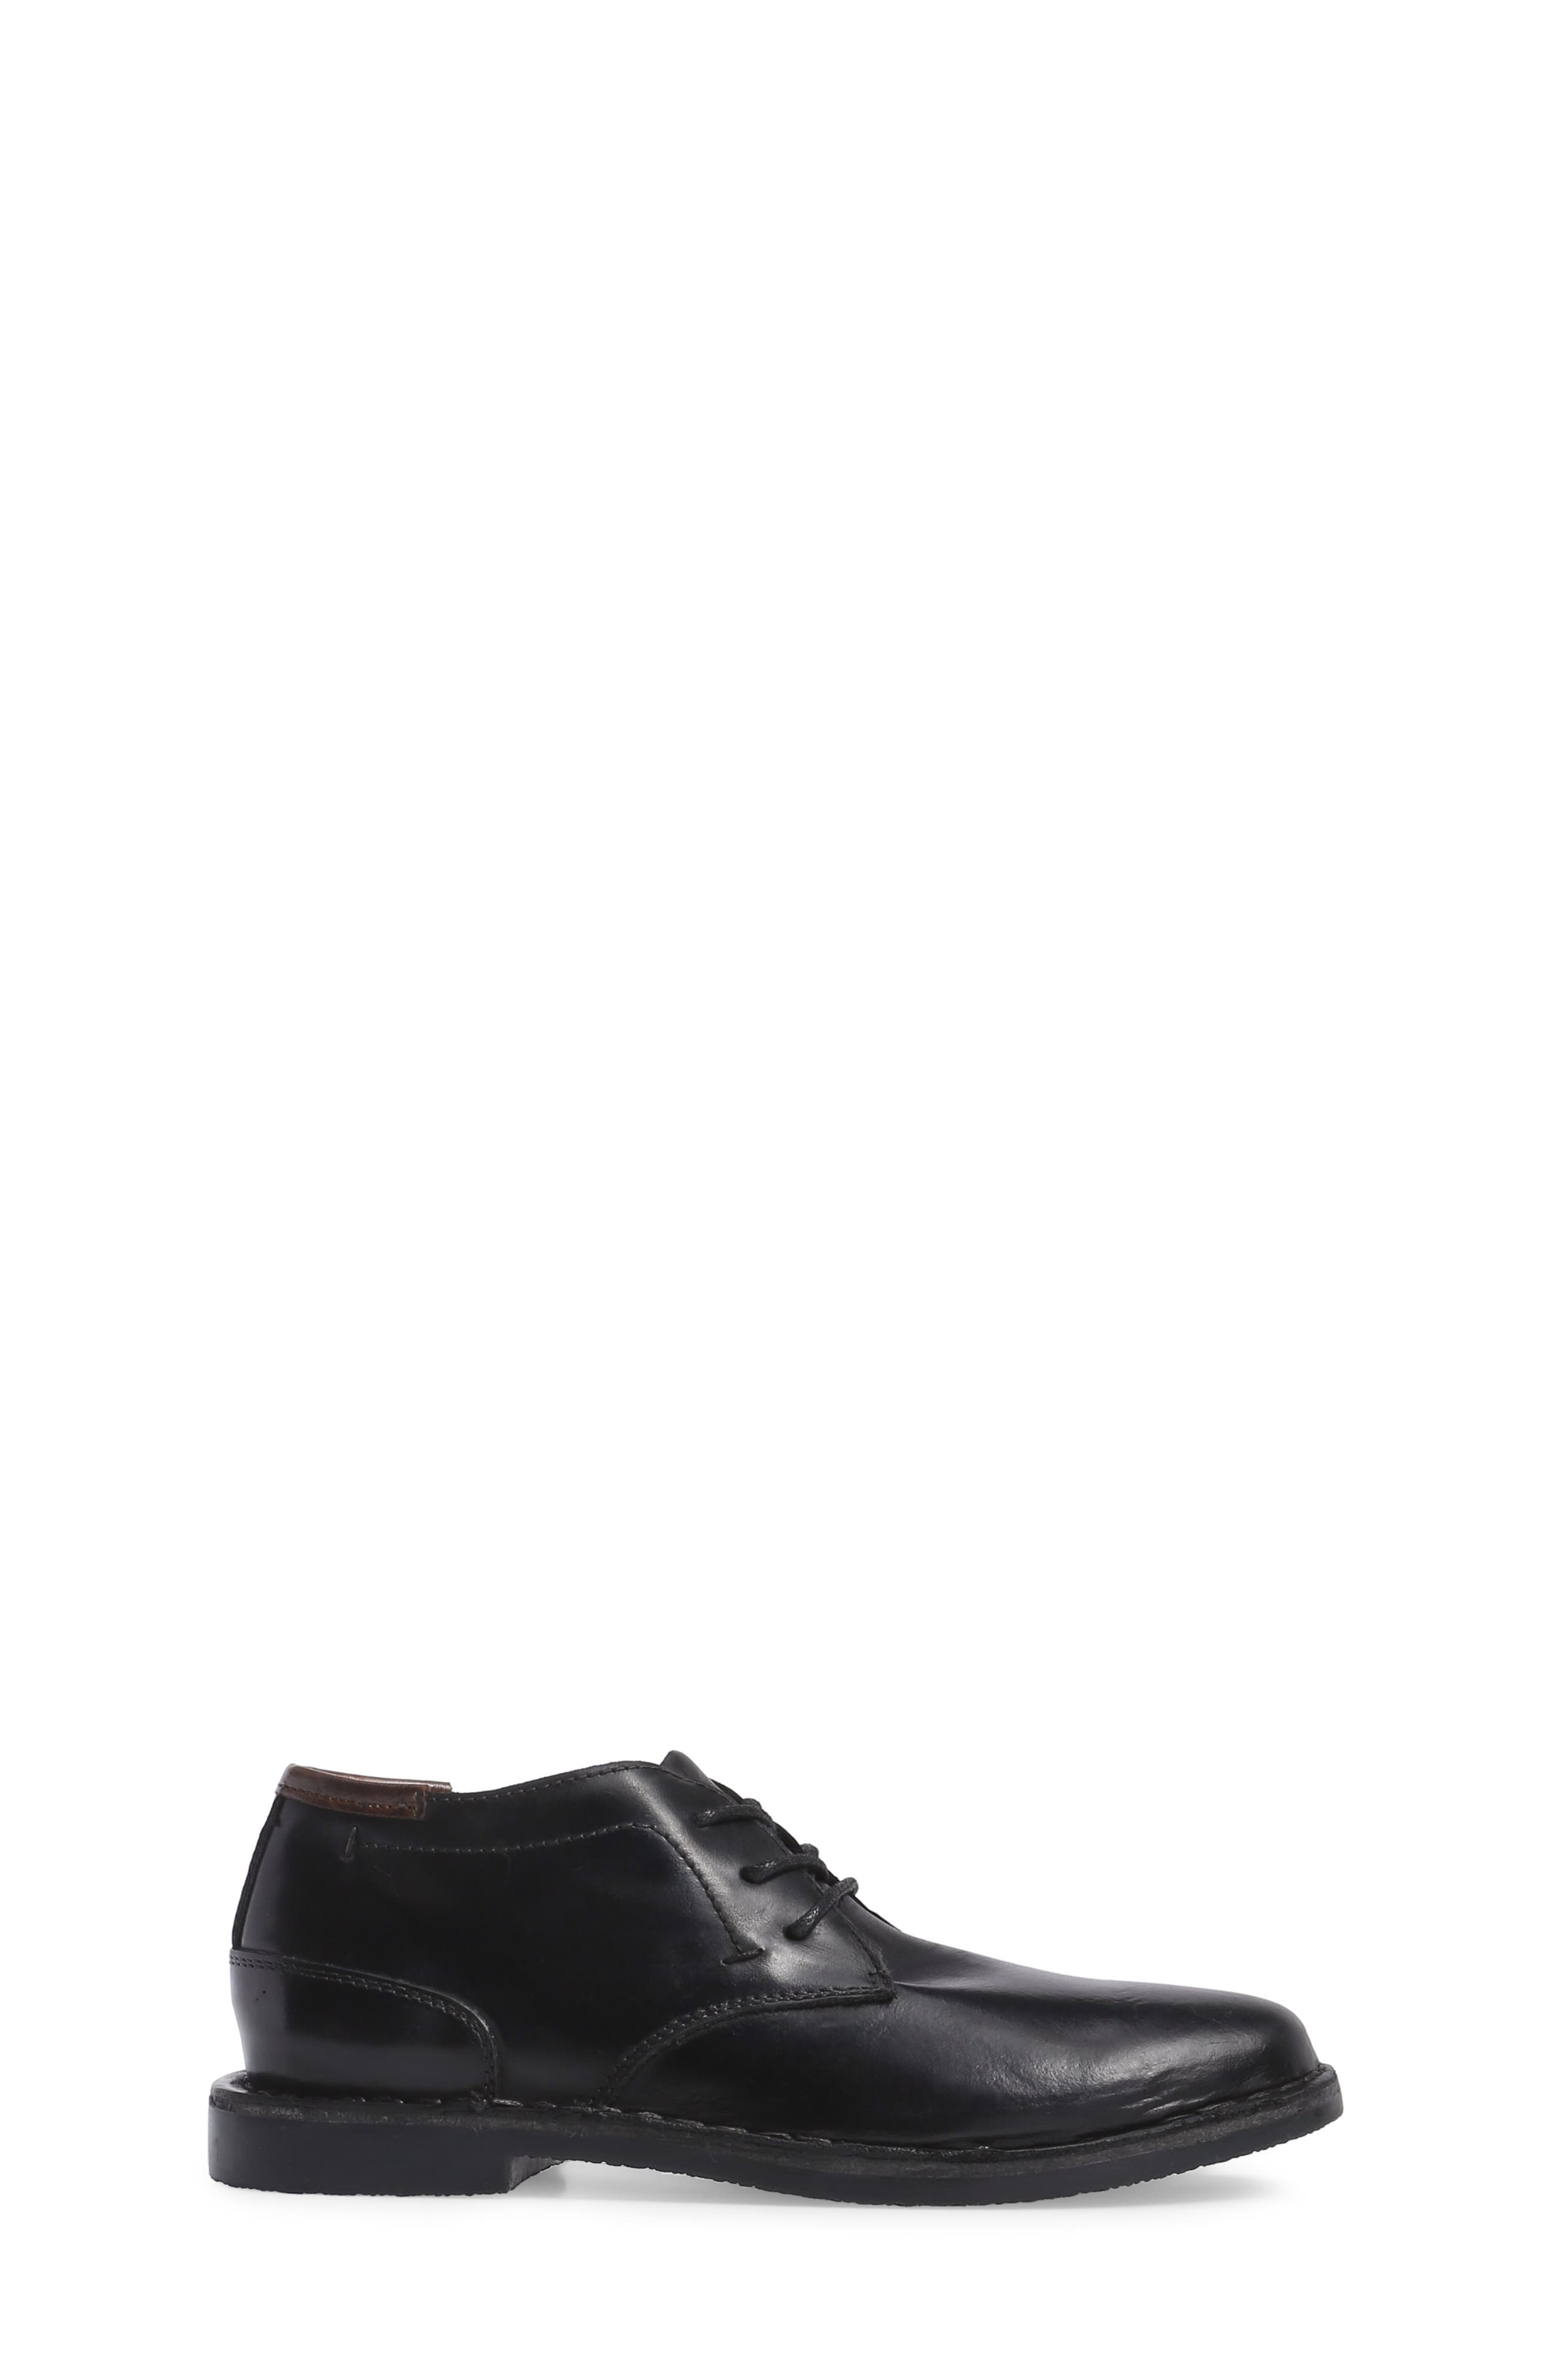 KENNETH COLE NEW YORK, Real Deal Chukka Boot, Alternate thumbnail 3, color, BLACK LEATHER